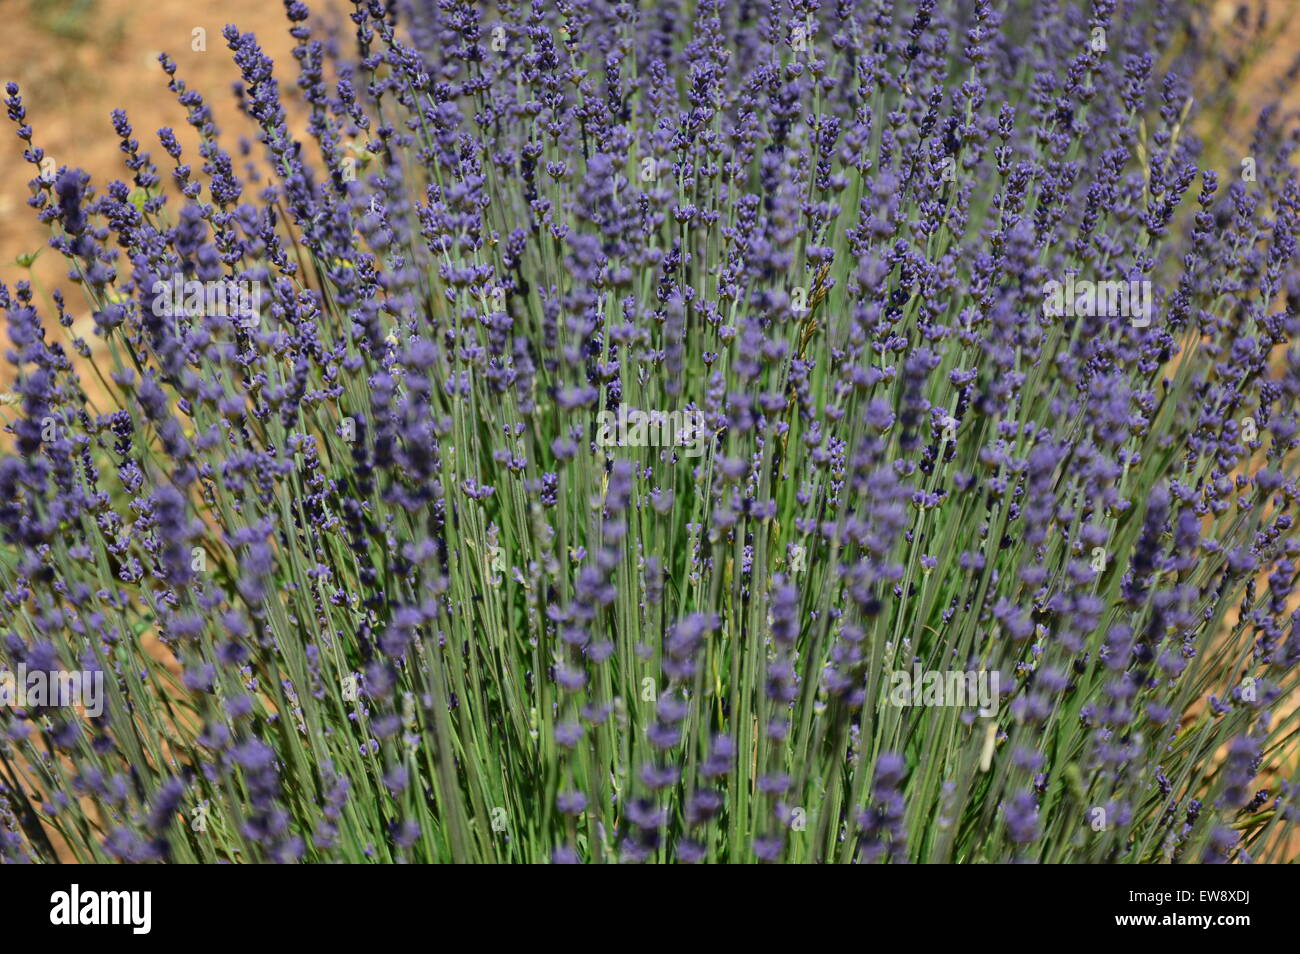 Lavenders in Provence, Pays de Sault, South of France - Stock Image